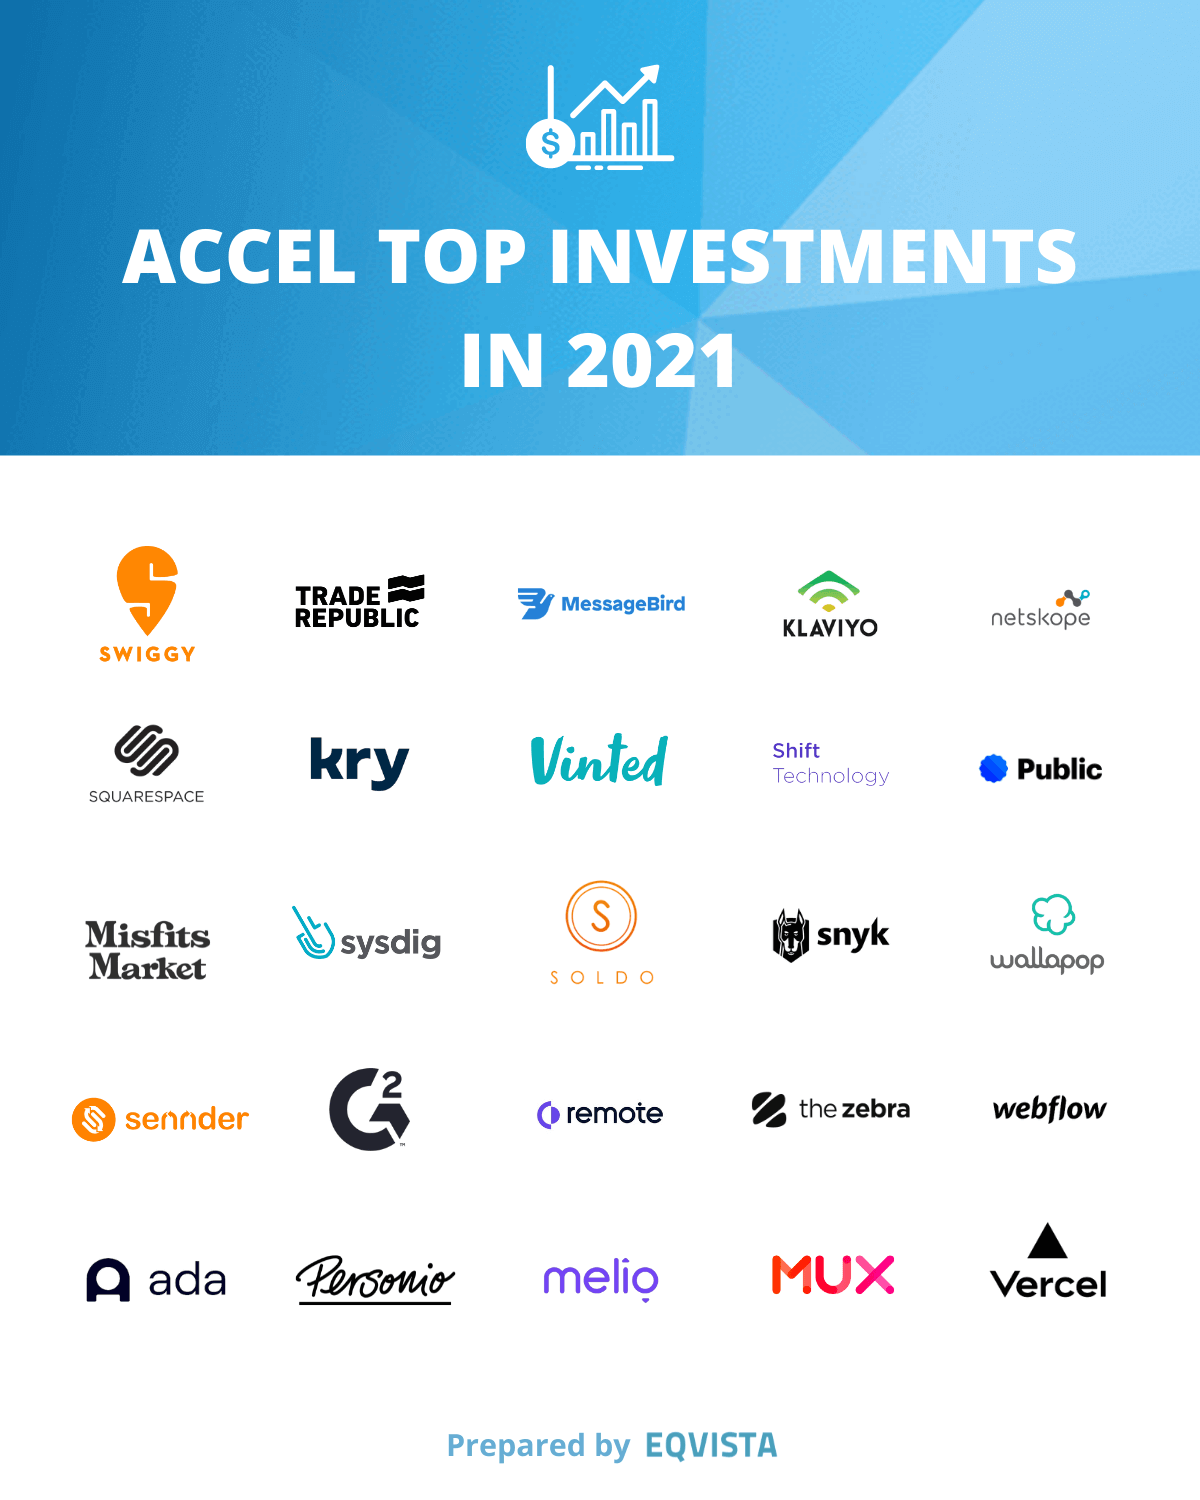 Accel top investments in 2021